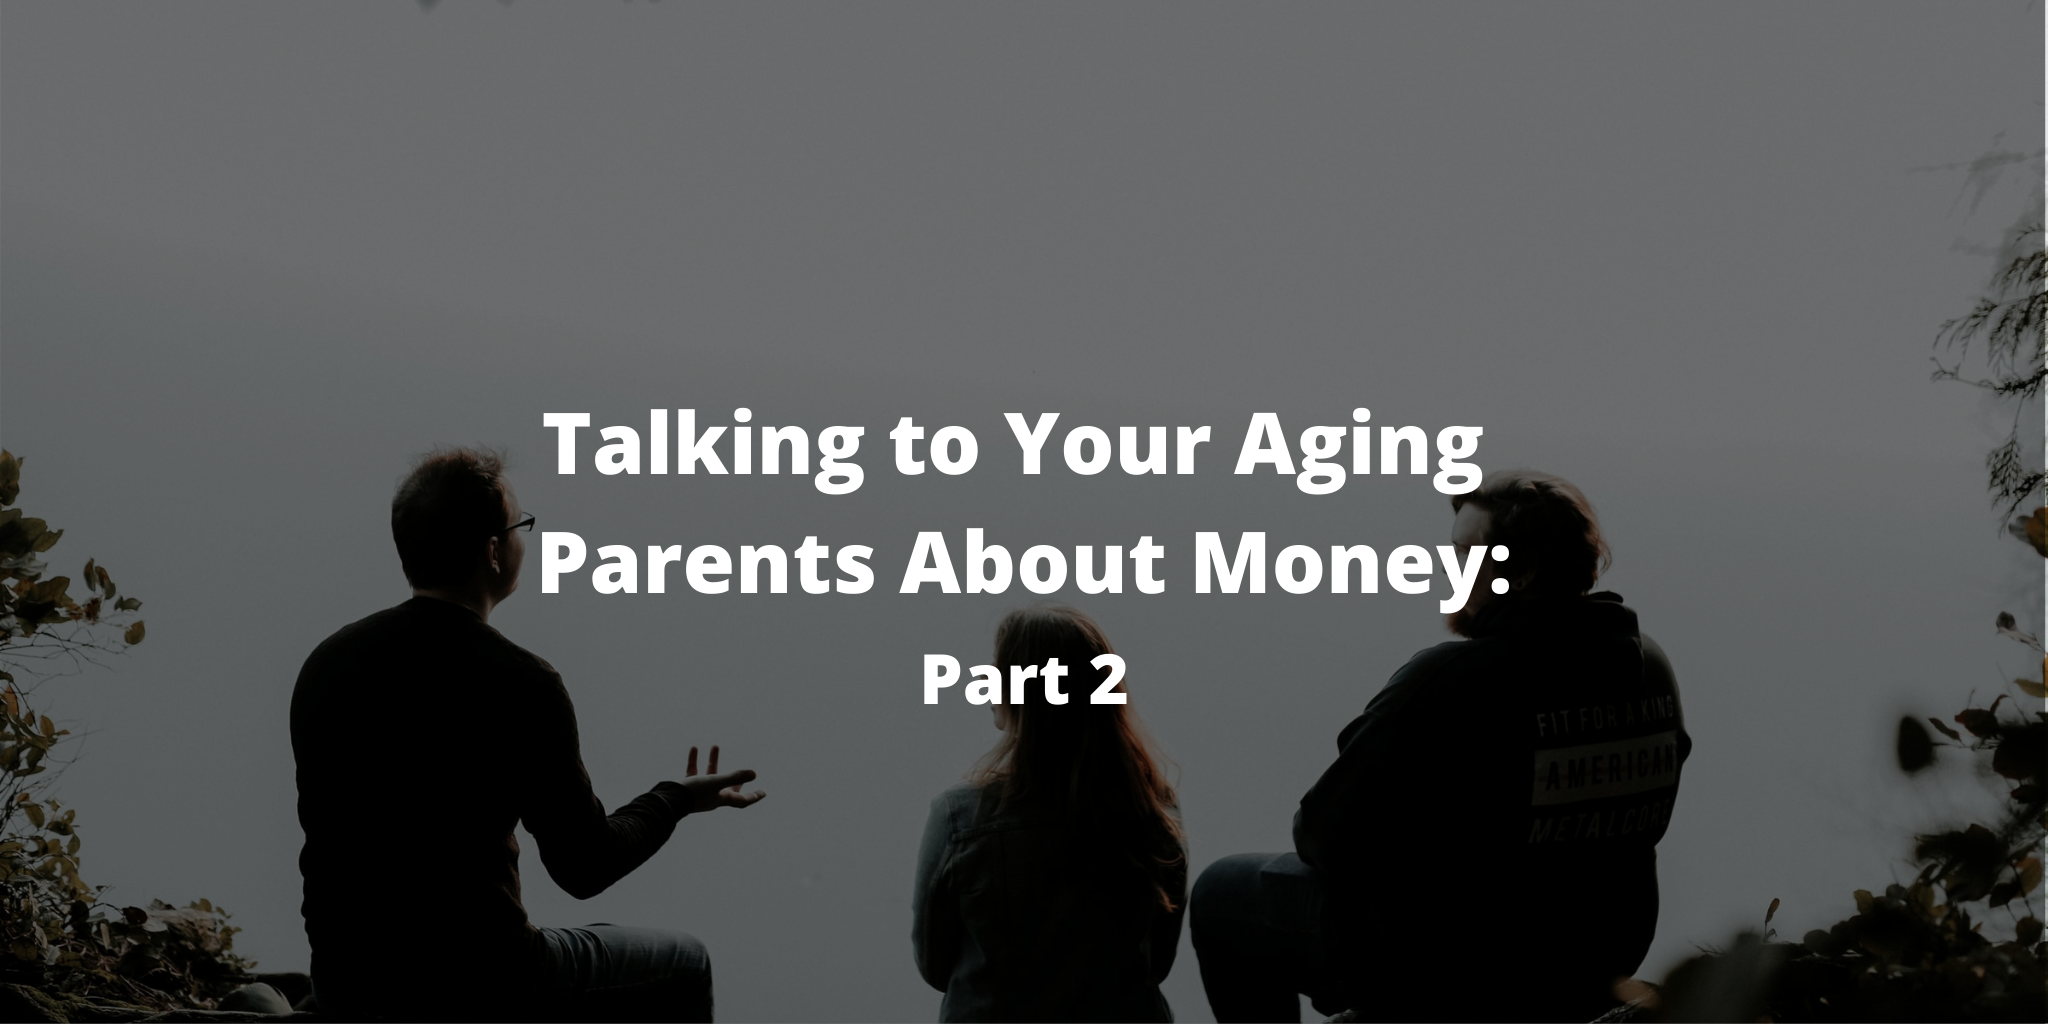 Talking to Your Aging Parents About Money: Part 2